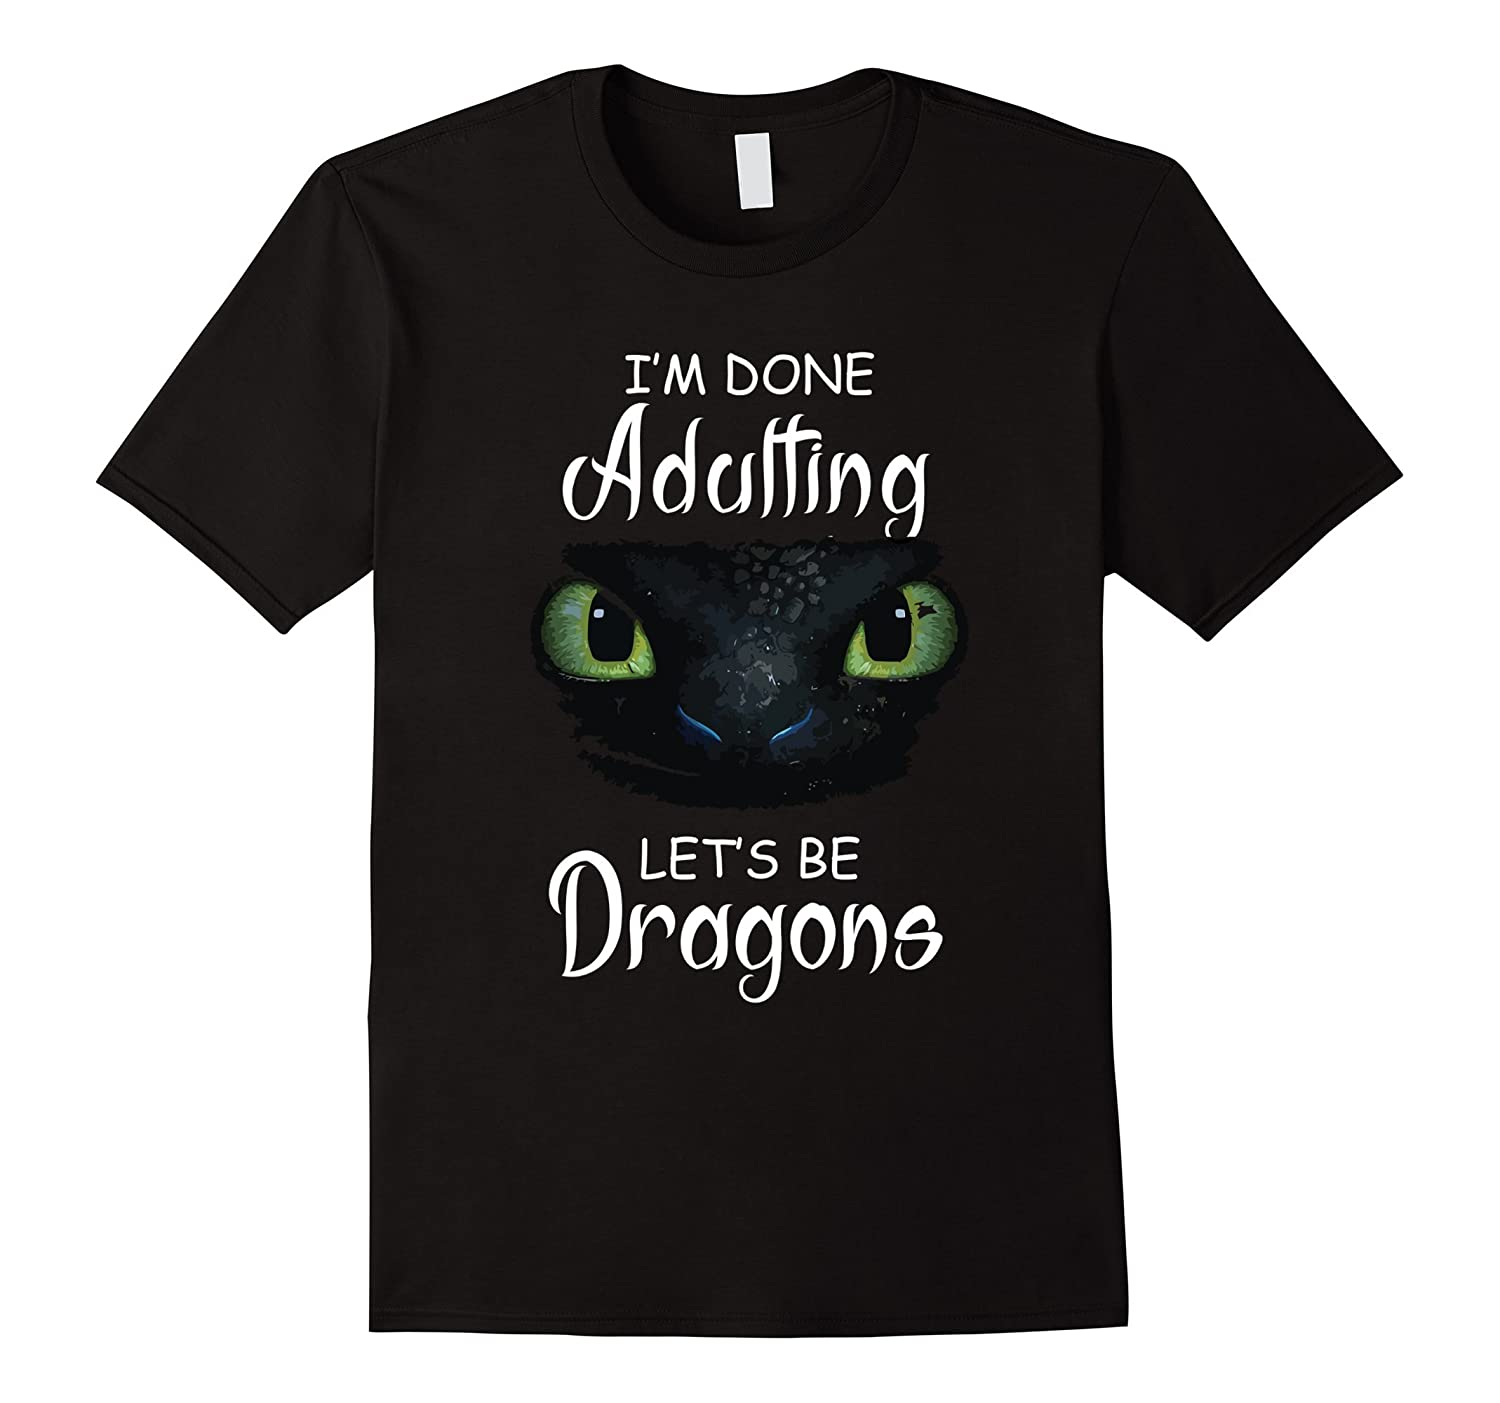 I'm Done Tee Adulting Let's Be T Dragons T-shirt-Art